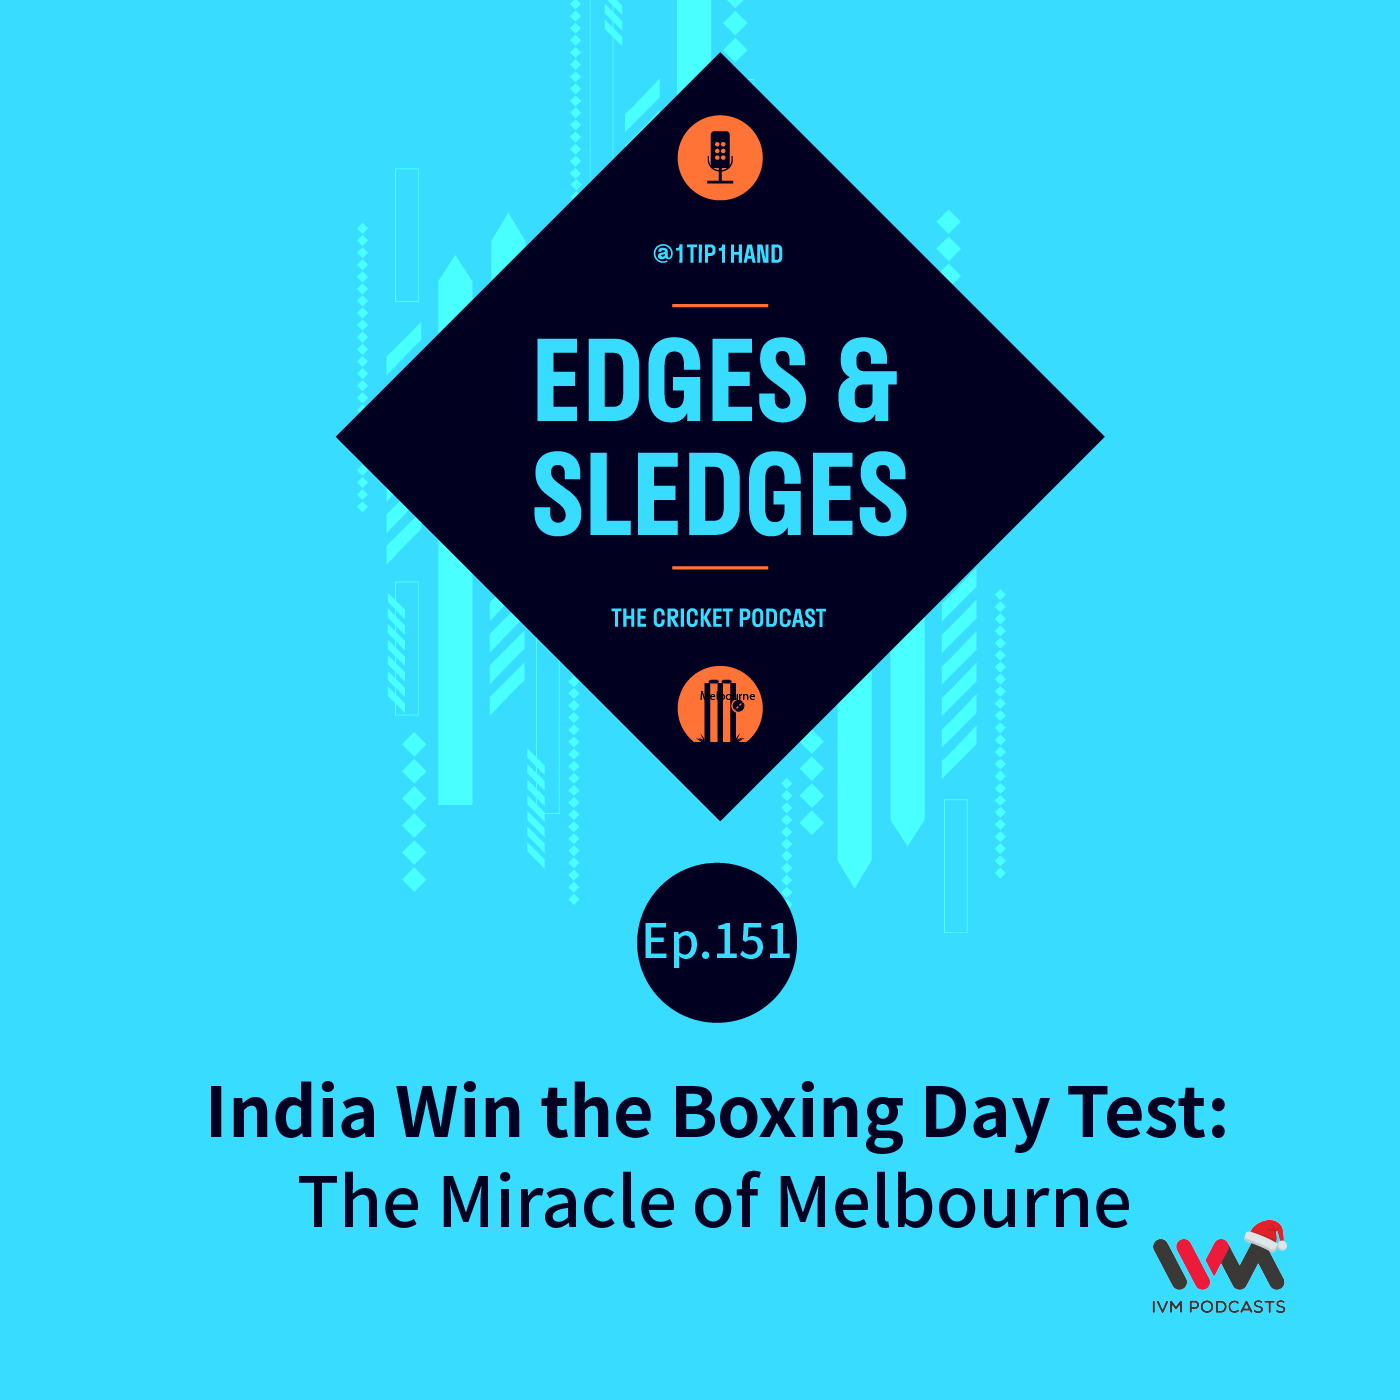 Ep. 151: India Win the Boxing Day Test: The Miracle of Melbourne